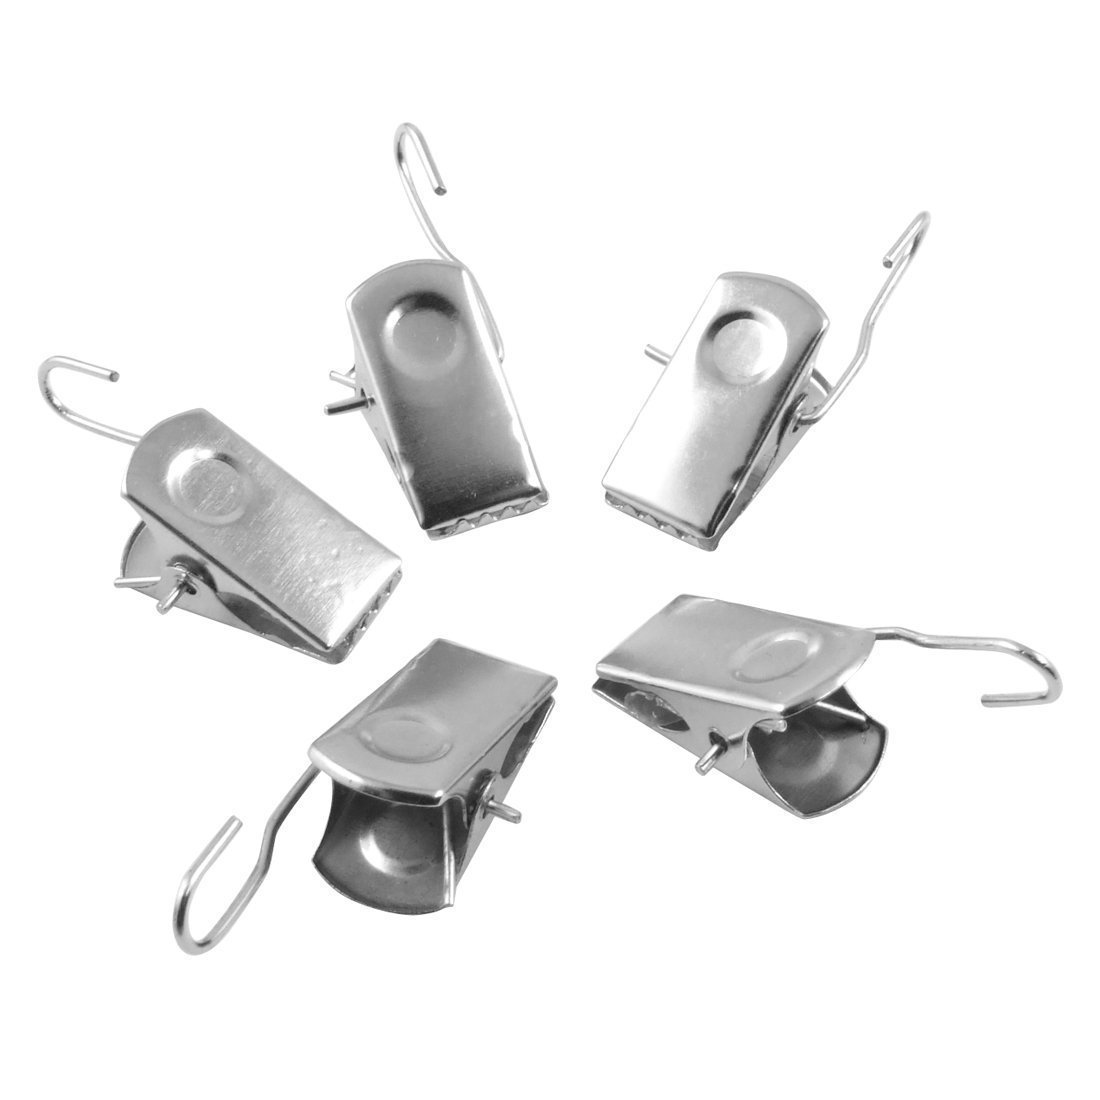 20 Pcs Metal Silver Tone Sprung Curtain Drapery Clips TOOGOO(R) a12020600ux0084